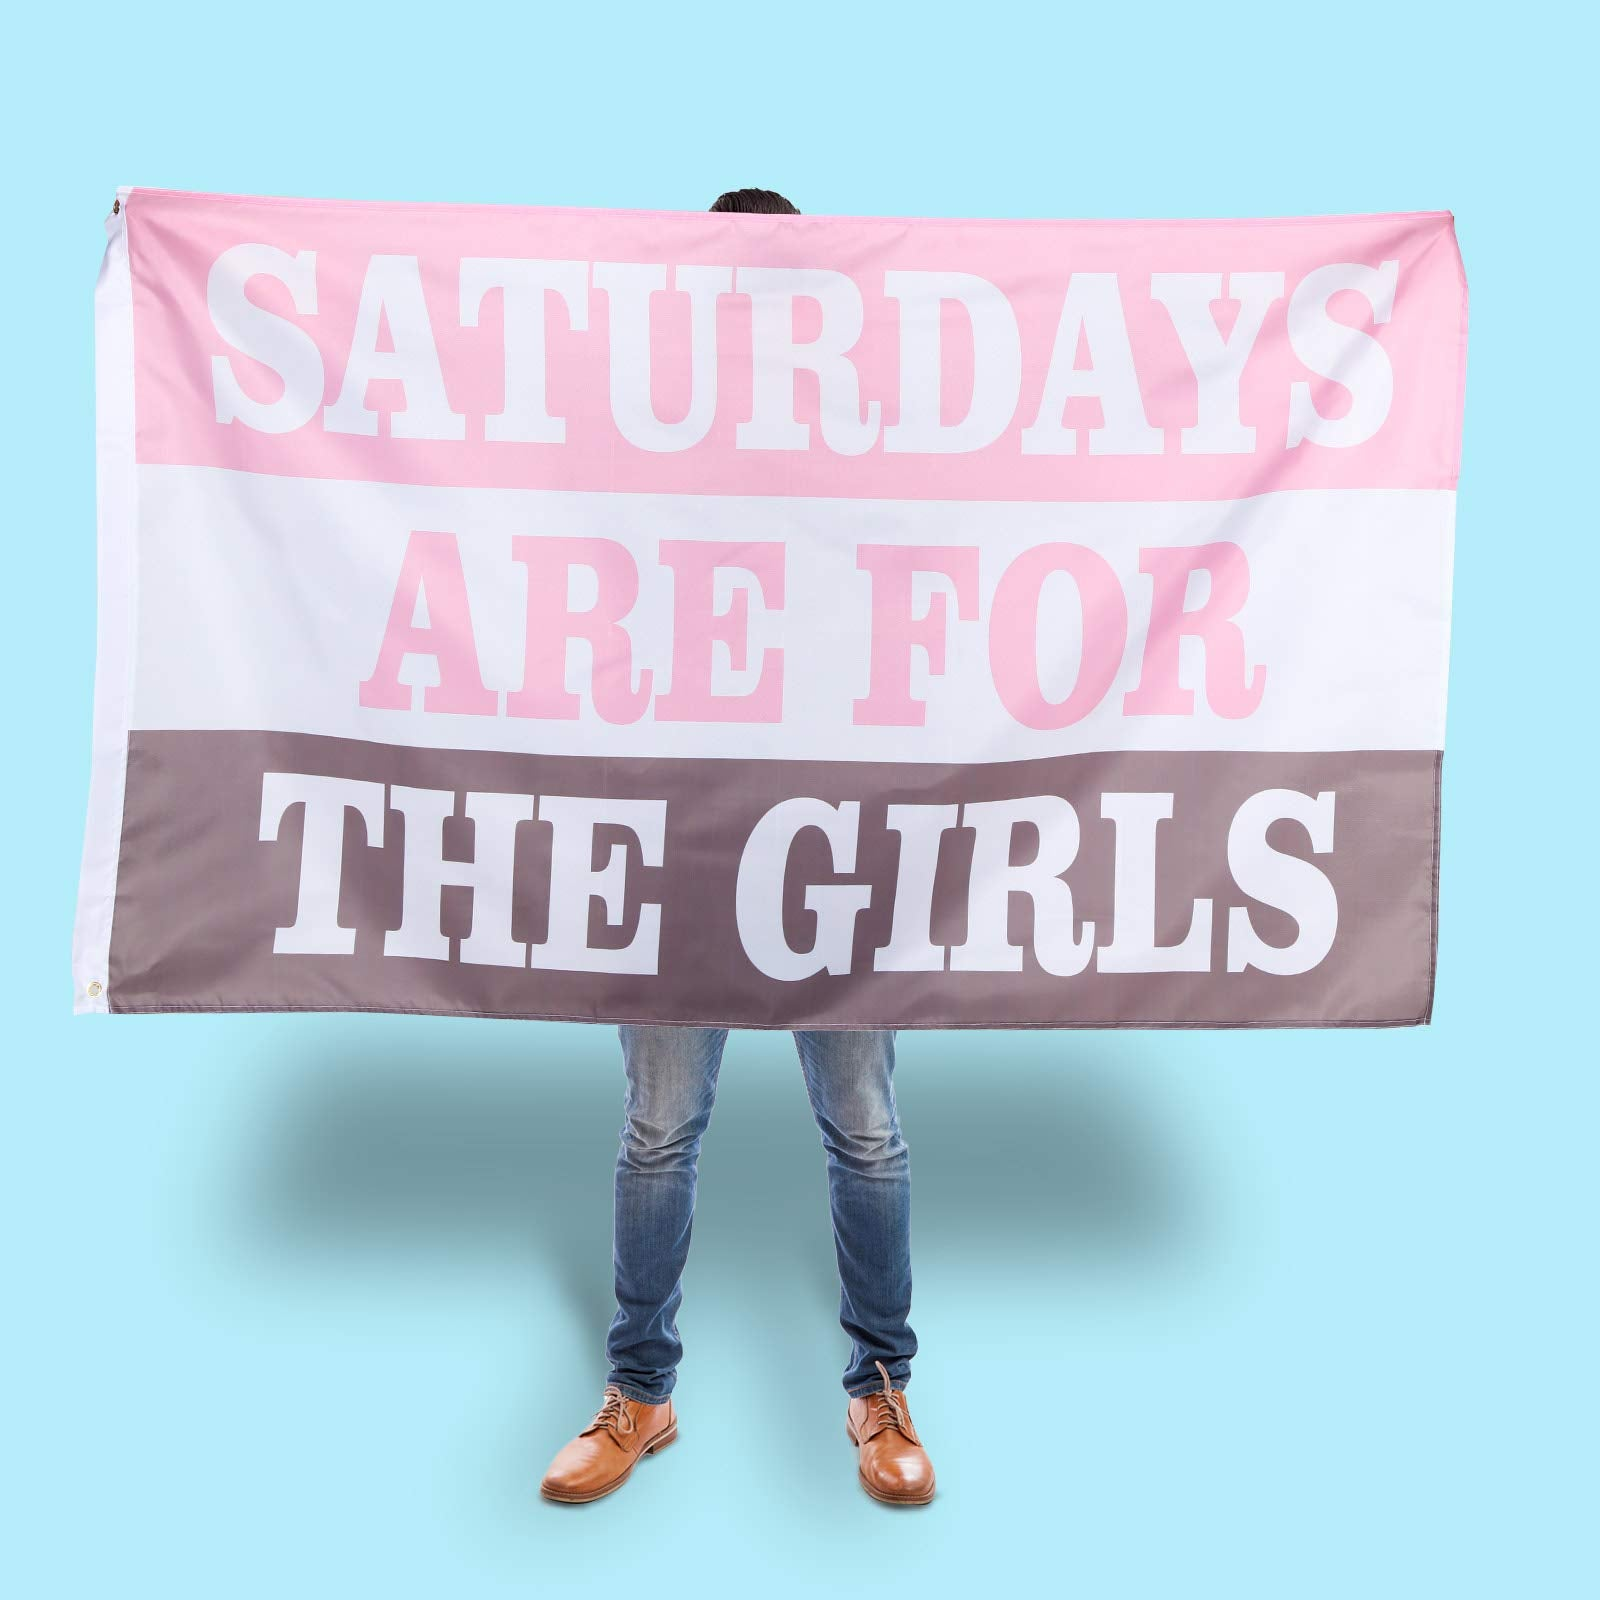 Saturdays are for The Girls Flag 3 x 5 Feet Outdoor Indoor Dorm Room Flag Banner Fraternity Party Dorm College Flag for Garden Balcony Themed Party Decoration (Pink, White, Grey)